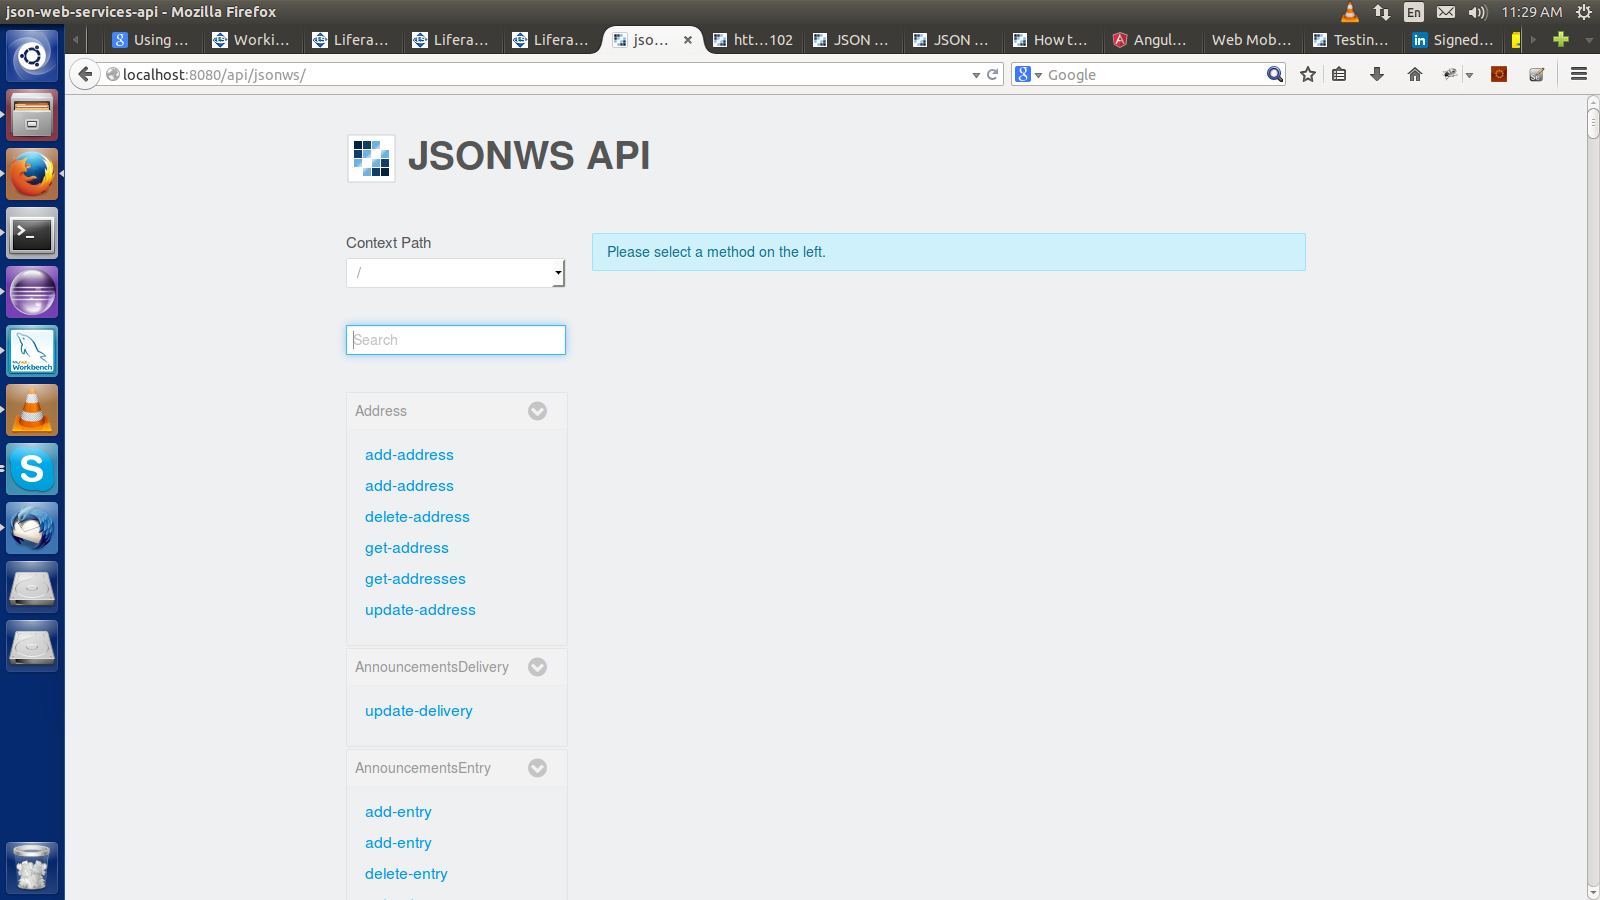 Using JSON Web Services with liferay